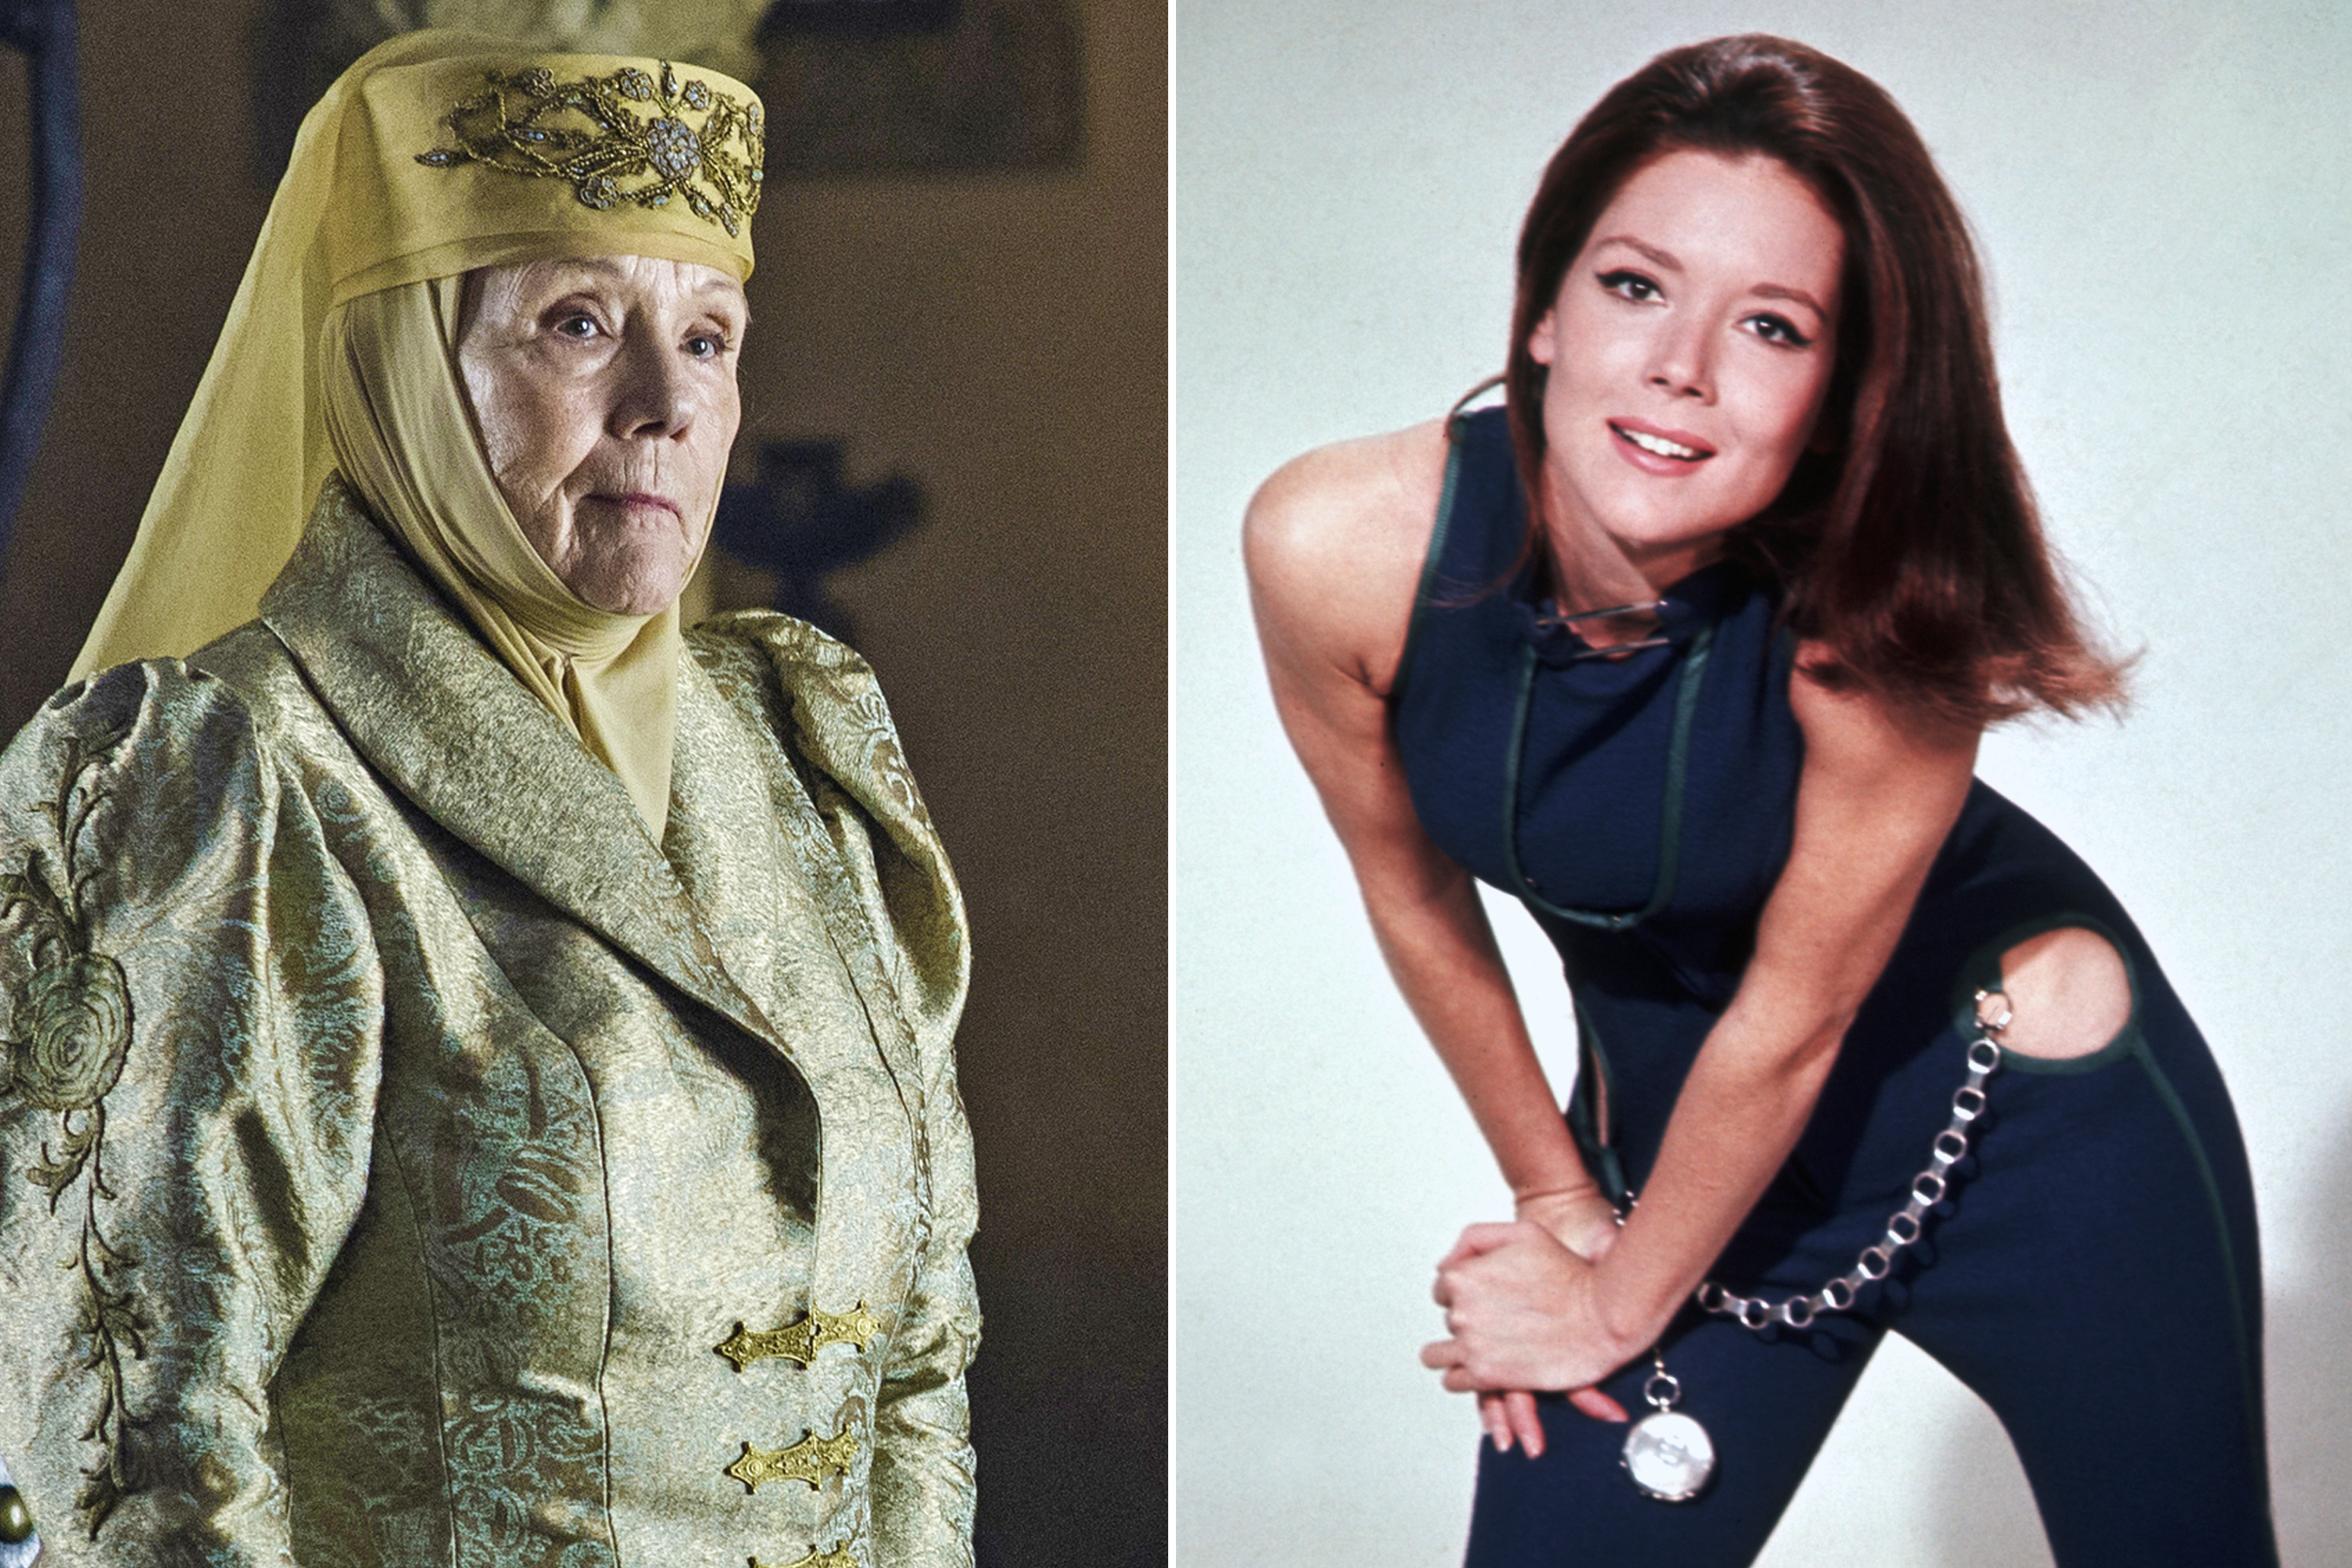 diana rigg had to deal with awful male fans early in her career diana rigg had to deal with awful male